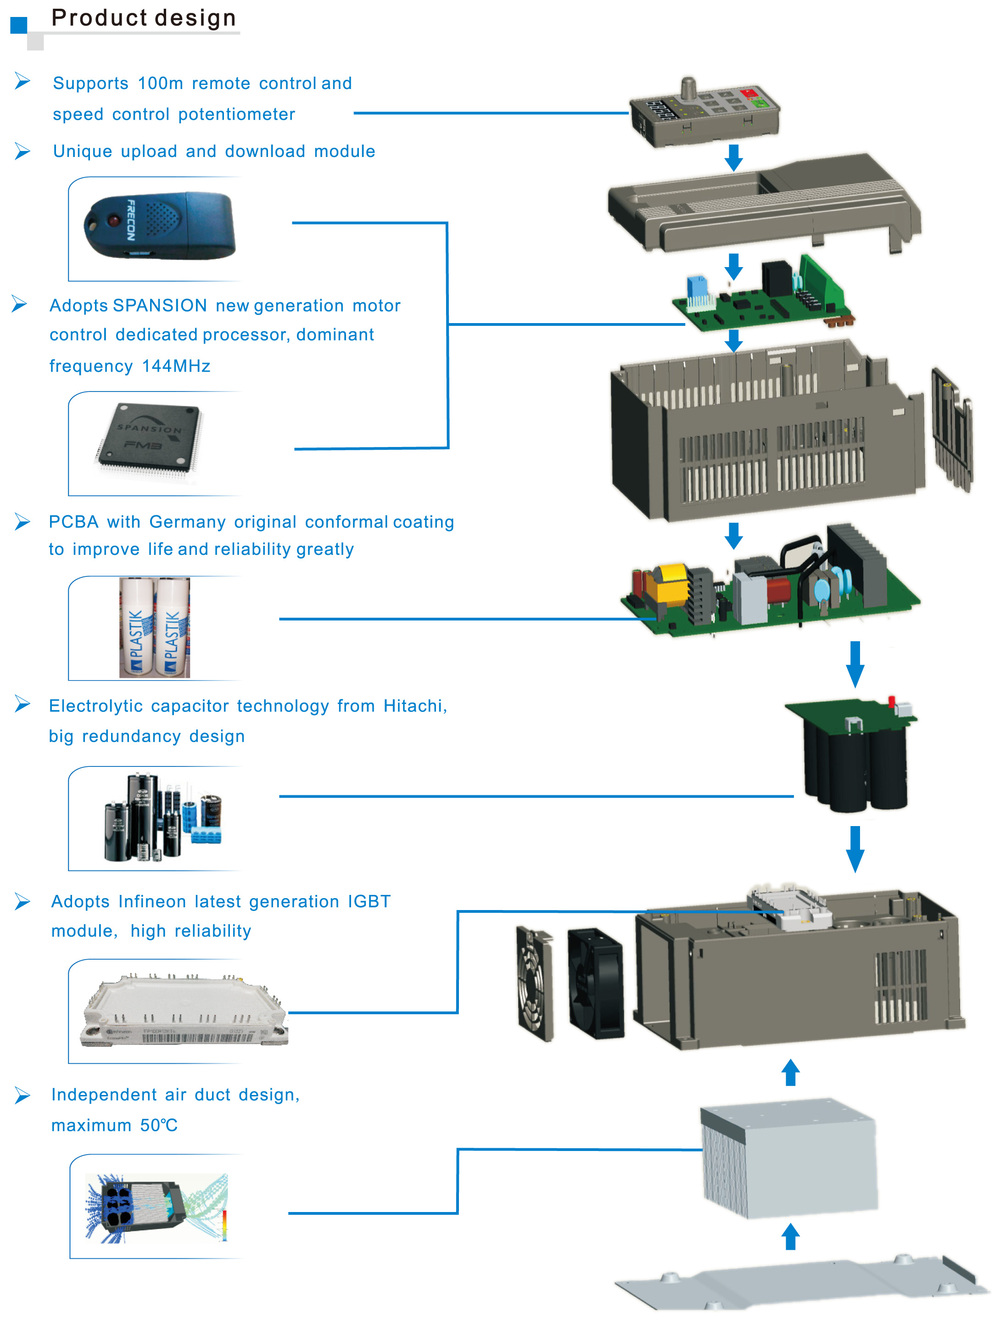 380v 415v 50 60hz 11 187kw Variable Ac Drive Vfdthree Phase System Electric Schematic Diagram Frecon Fr200 Product Design